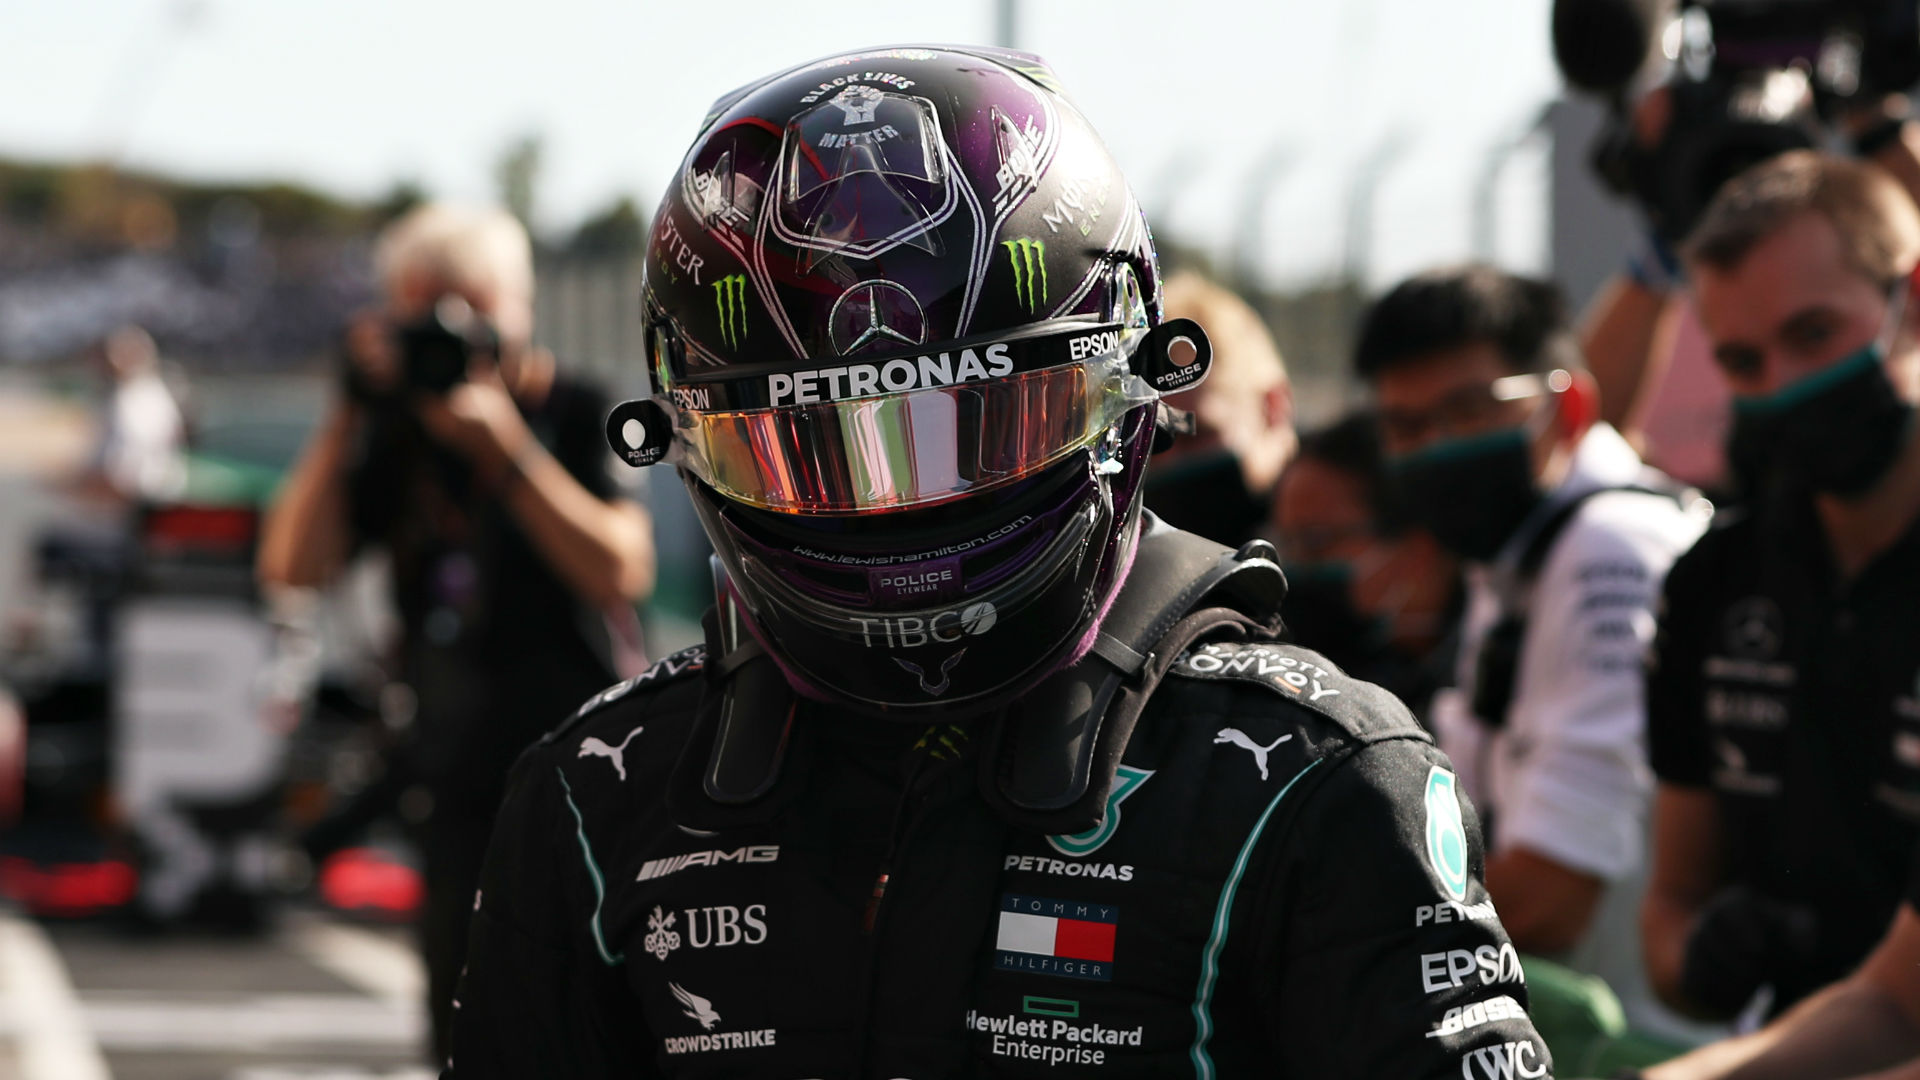 F1 2020: Starting grid and race preview for Portuguese Grand Prix